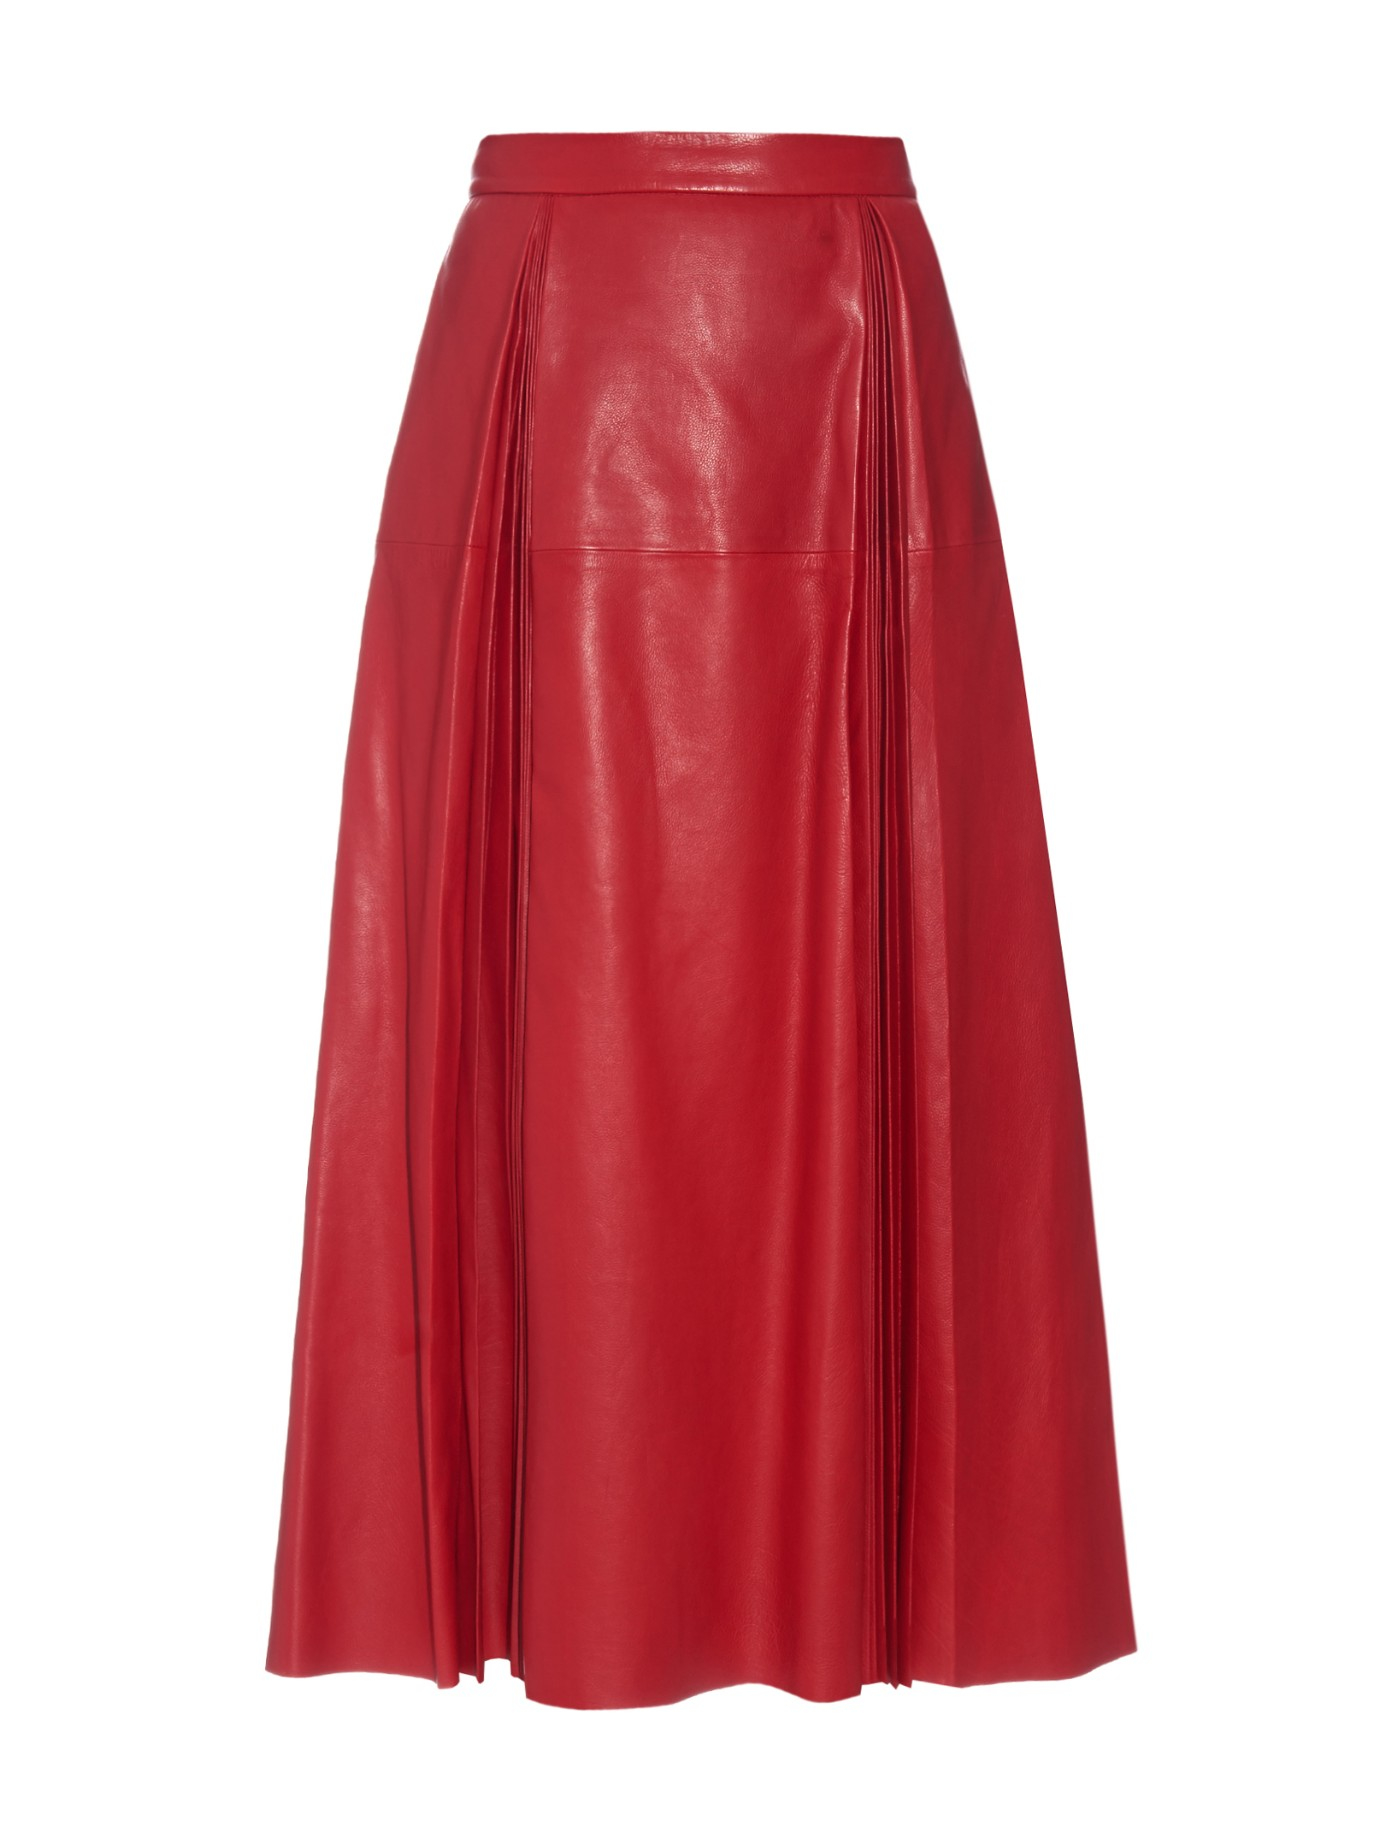 Gucci Pleated Leather Midi Skirt in Red | Lyst